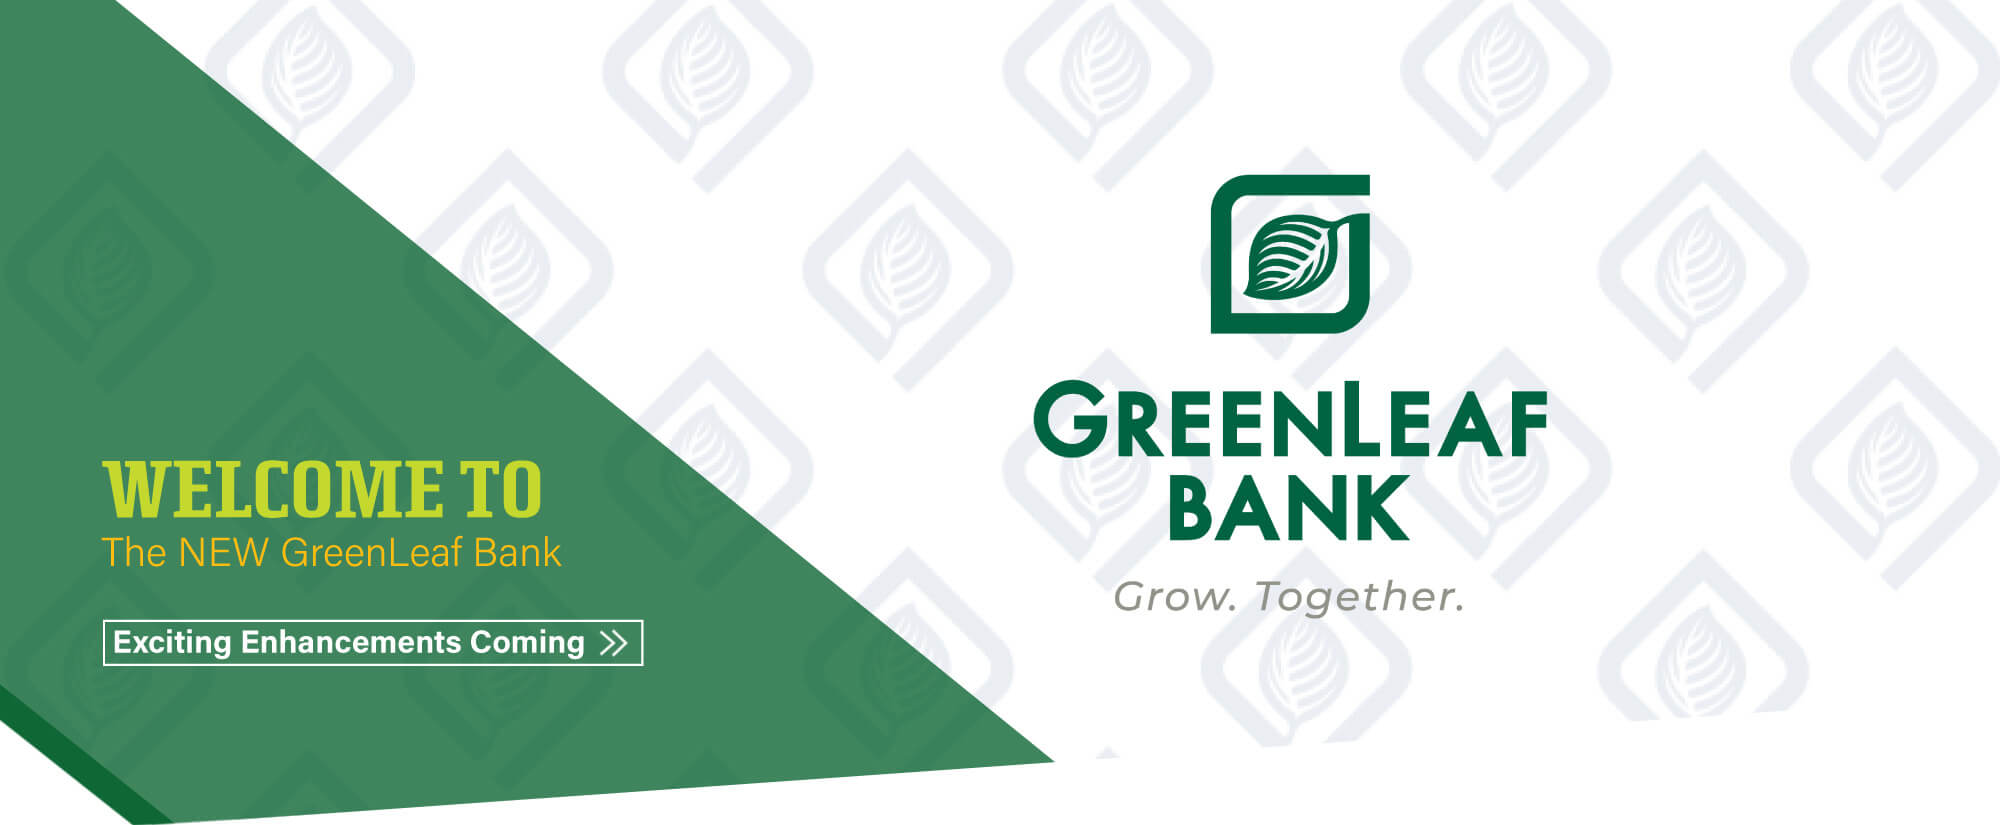 We've Changed our name to GreenLeaf Bank!